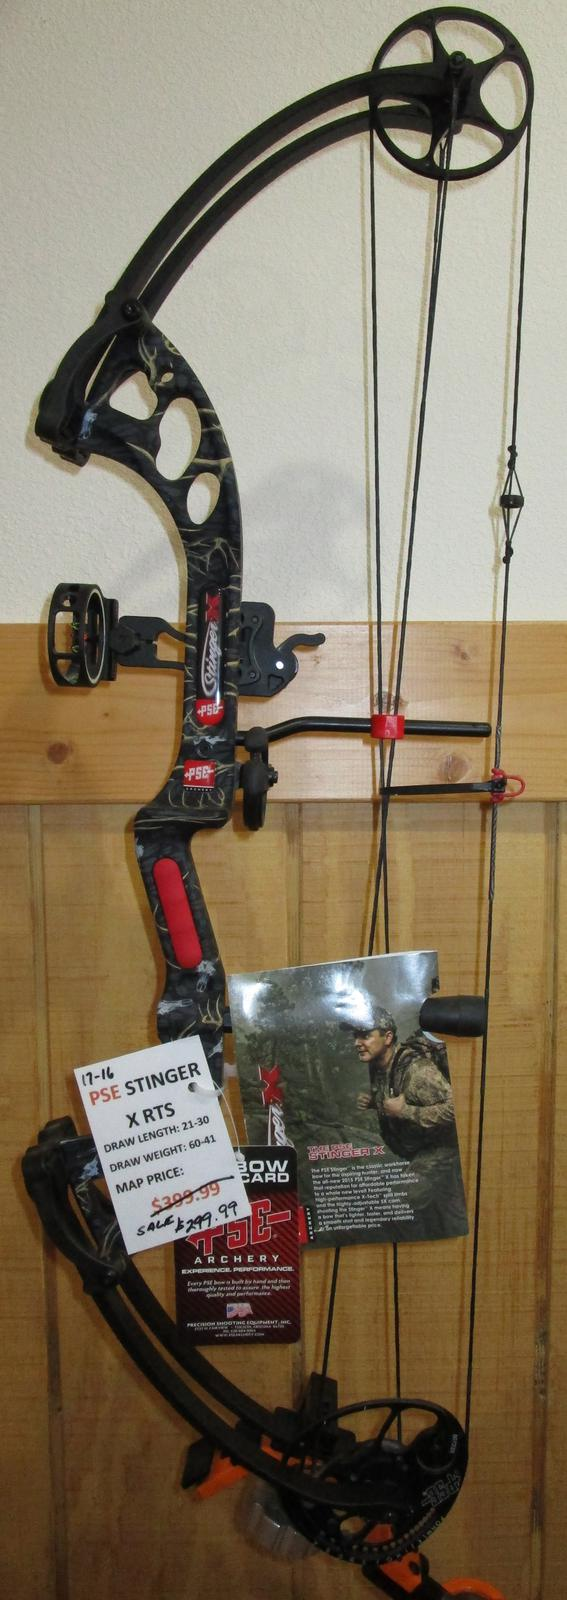 Inventory from PSE Archery and Skeeter Mid-State Marine, Inc